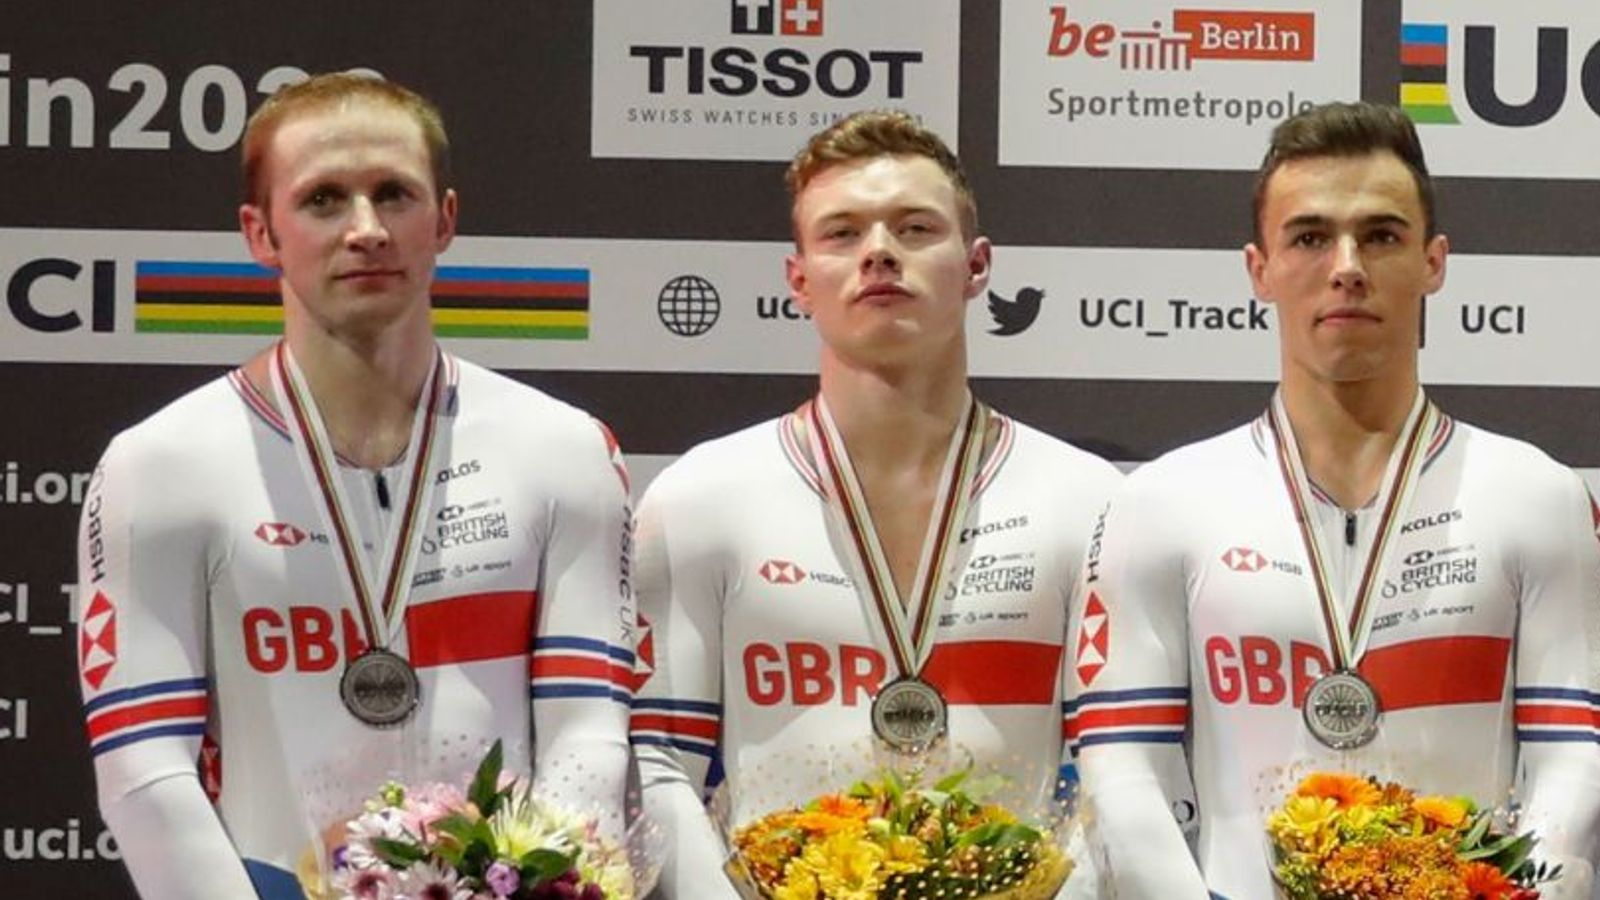 GB win Team Sprint silver at Track Cycling World Championships